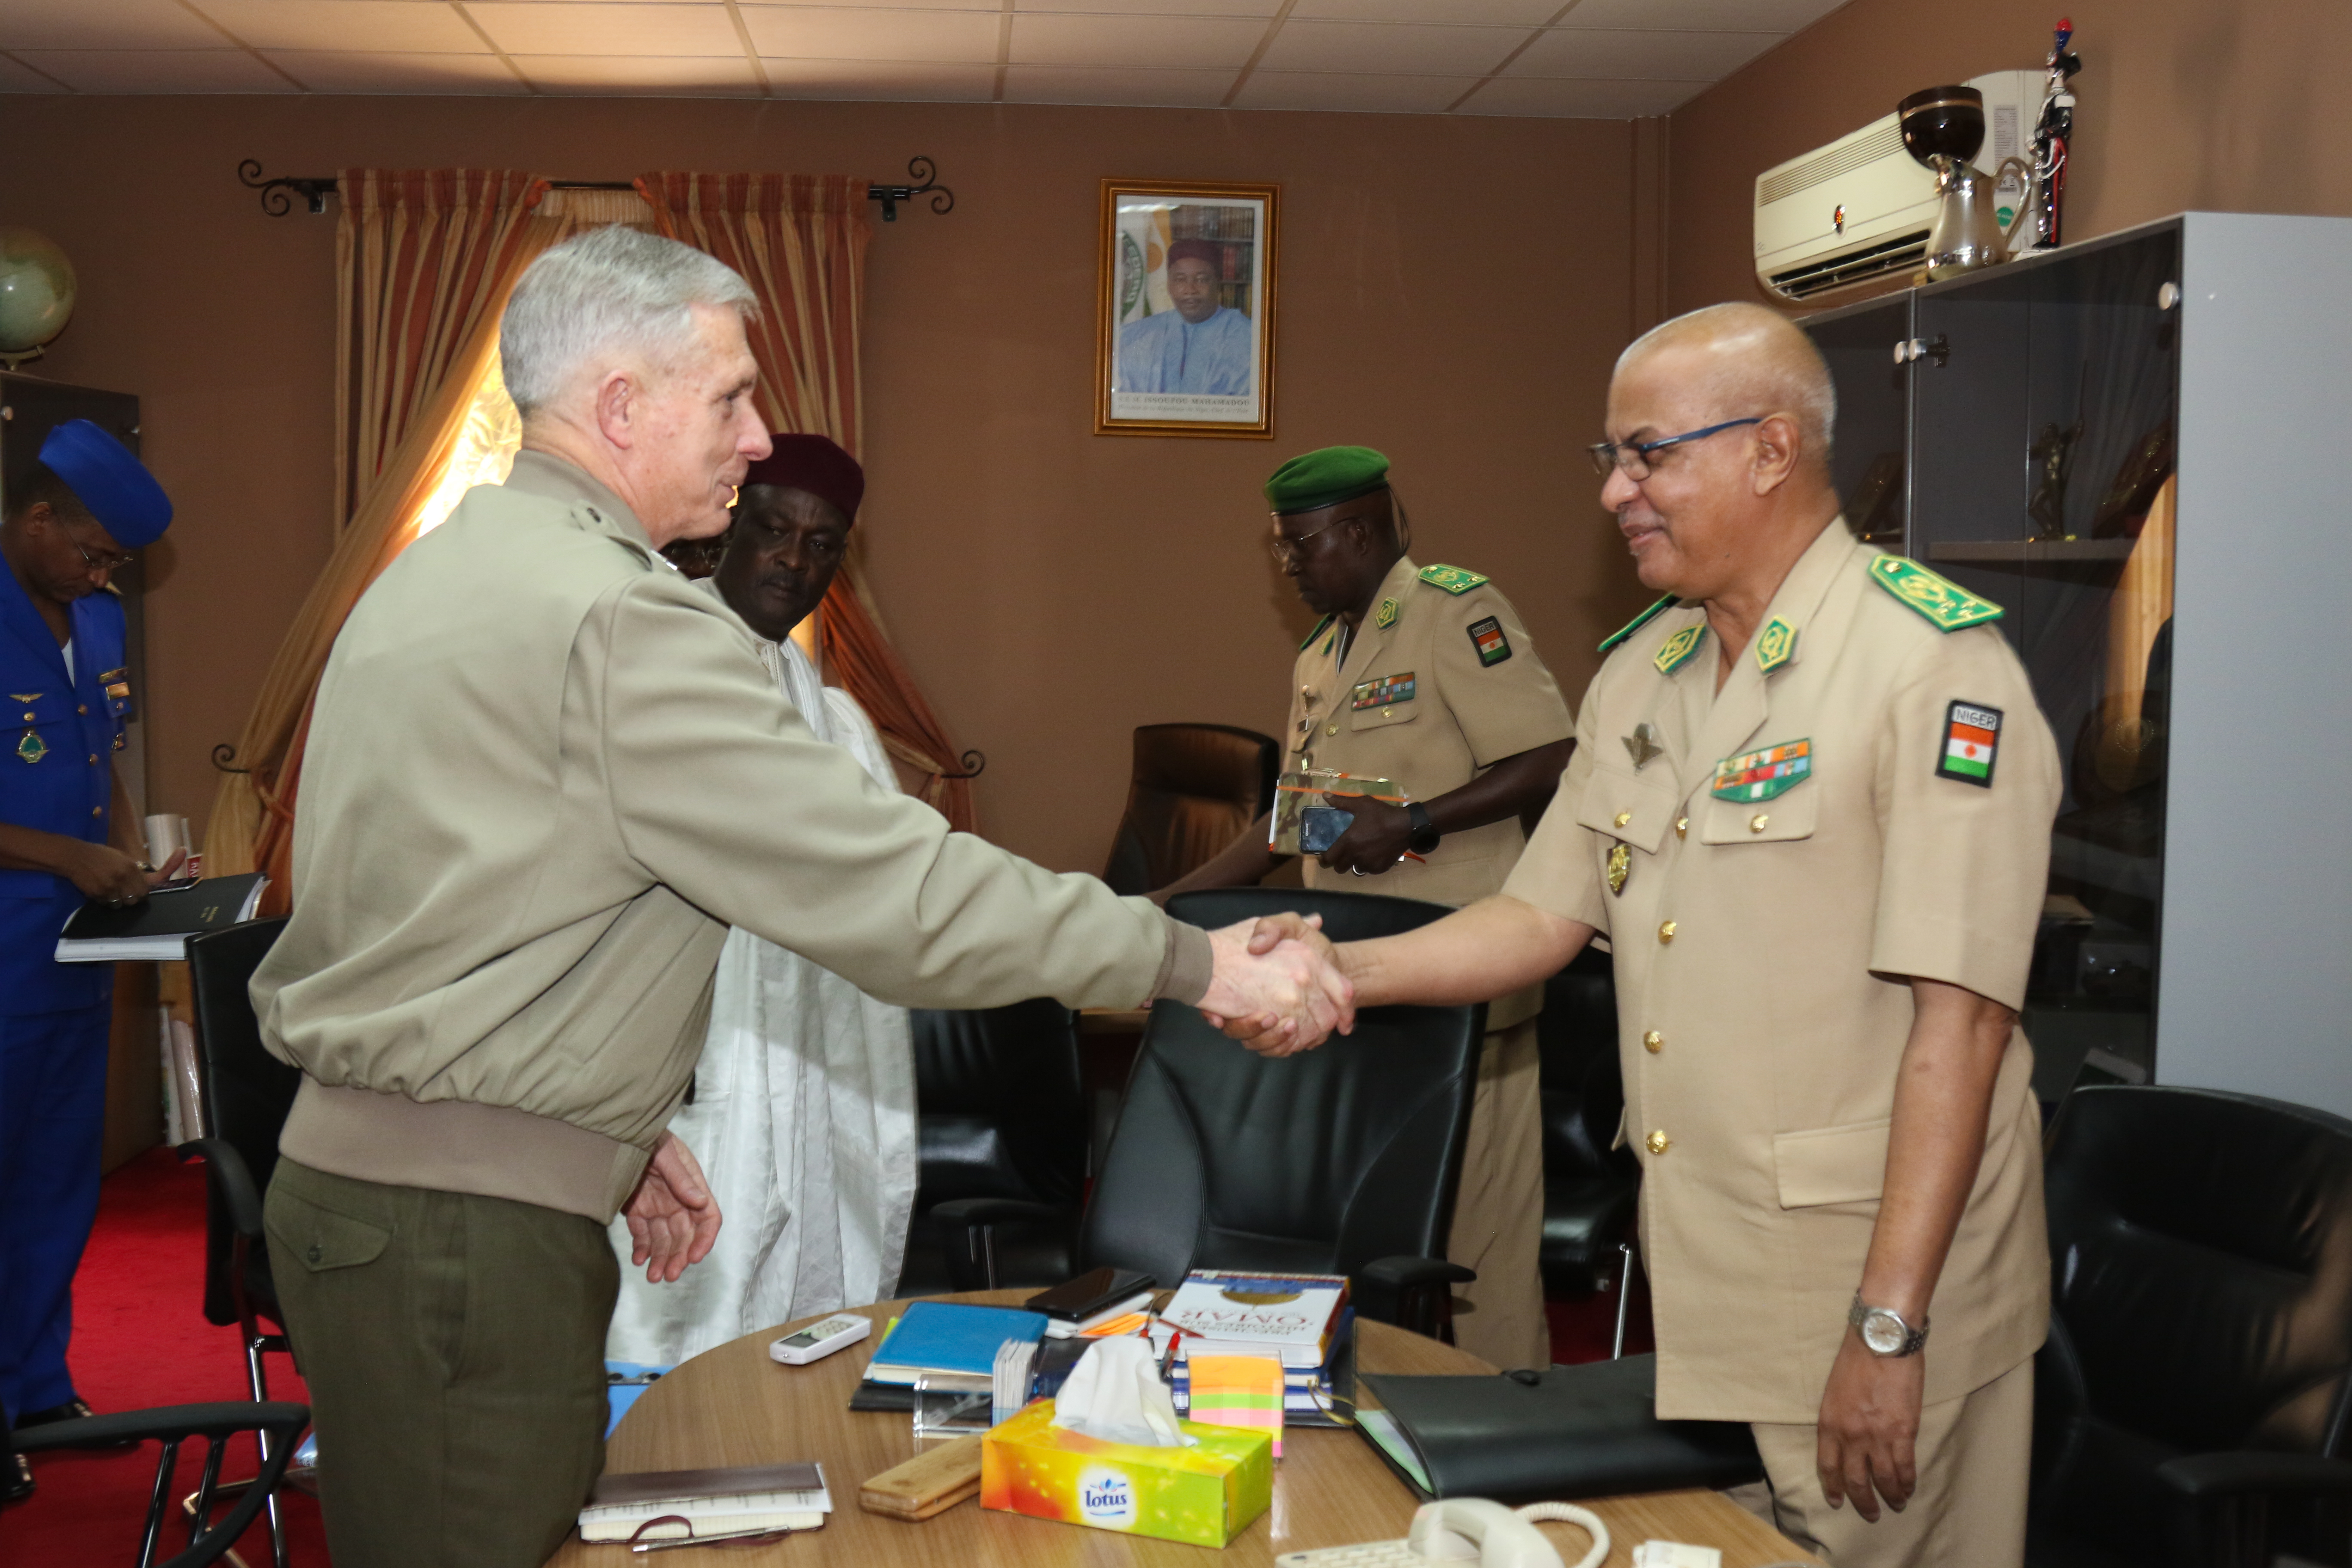 U.S. Marine Corps Gen. Thomas D. Waldhauser, commander, U.S. Africa Command, greets Lt. Gen. Ahmed Mohamed, Nigerien Chief of Defense, during a meeting Jan. 24, 2018 in Niamey, Niger.